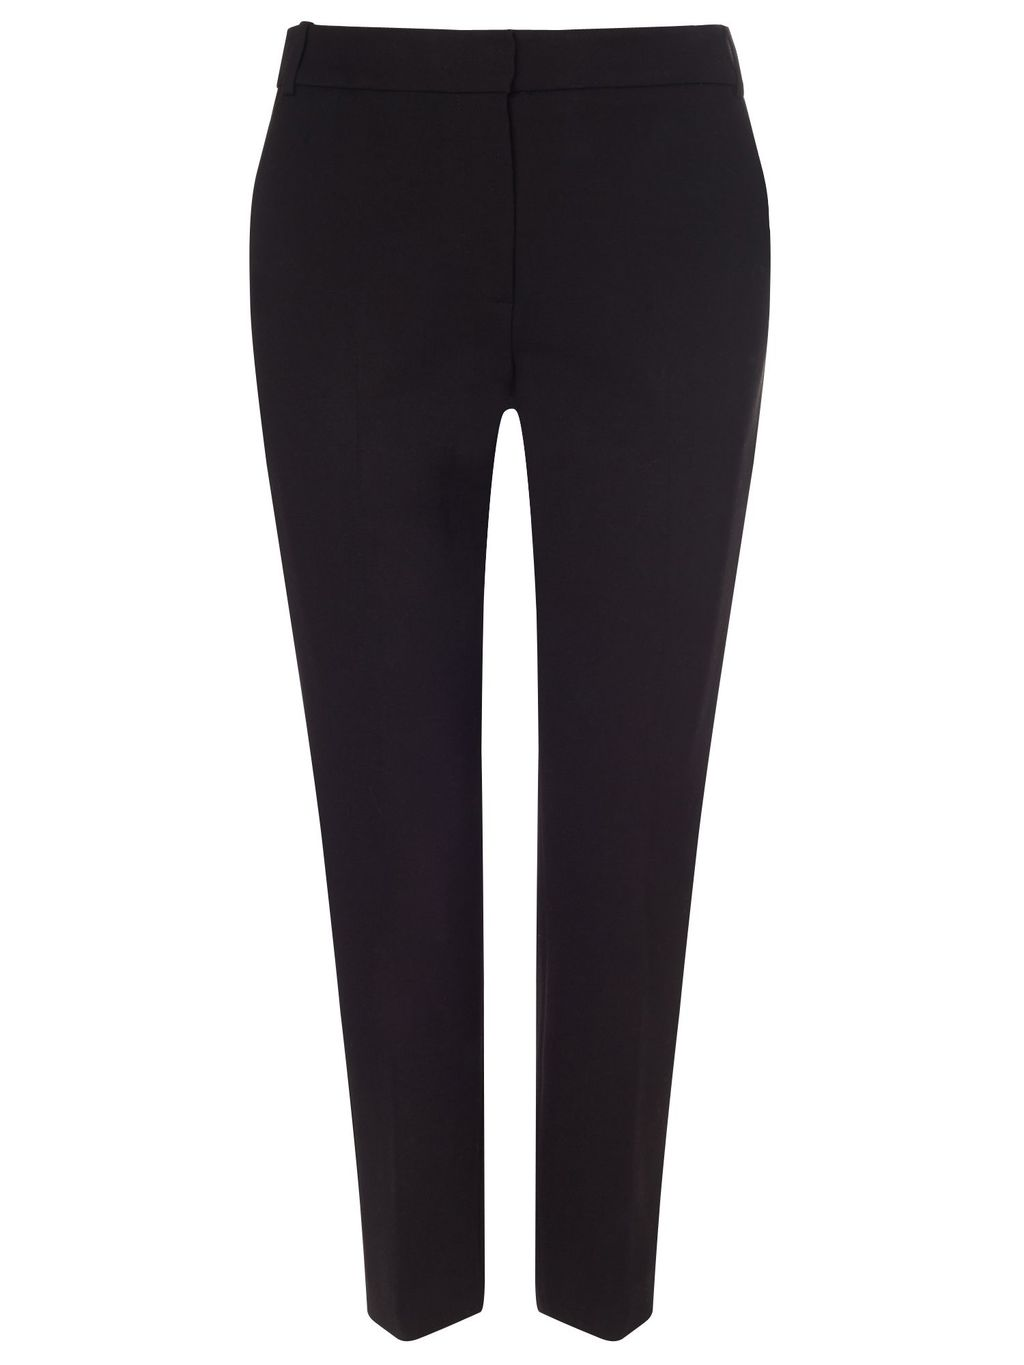 J Banks Thick Jersey Trouser, Black - length: standard; pattern: plain; waist: mid/regular rise; predominant colour: black; occasions: work; fit: slim leg; pattern type: fabric; texture group: jersey - stretchy/drapey; style: standard; fibres: viscose/rayon - mix; season: s/s 2016; wardrobe: basic